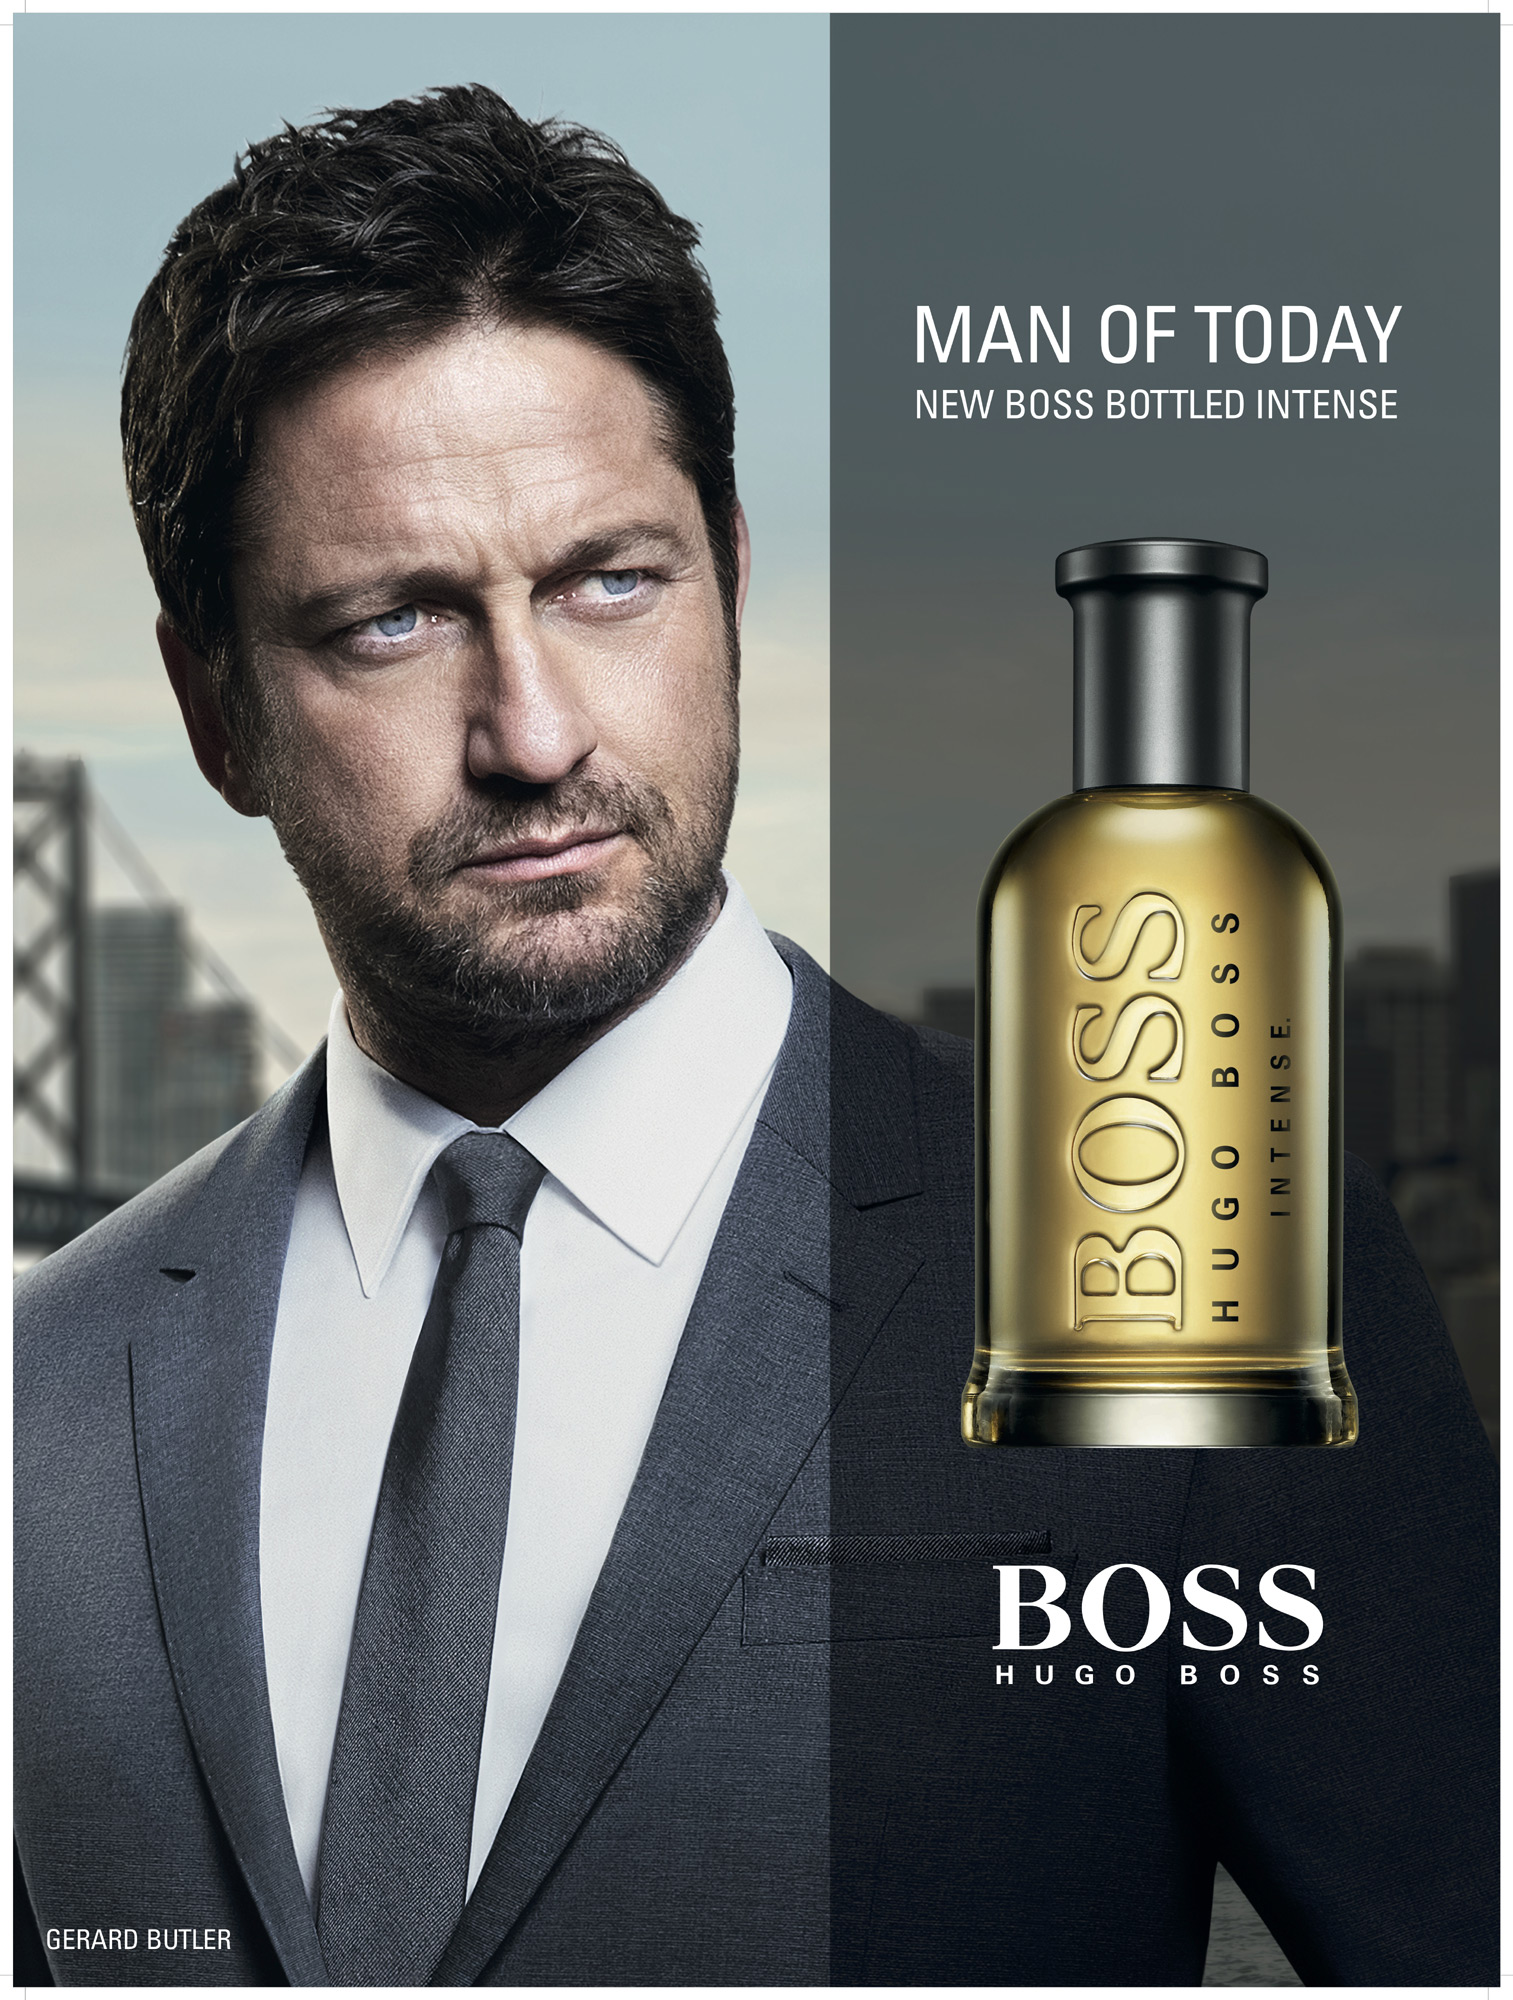 boss bottled intense hugo boss cologne ein neues parfum. Black Bedroom Furniture Sets. Home Design Ideas